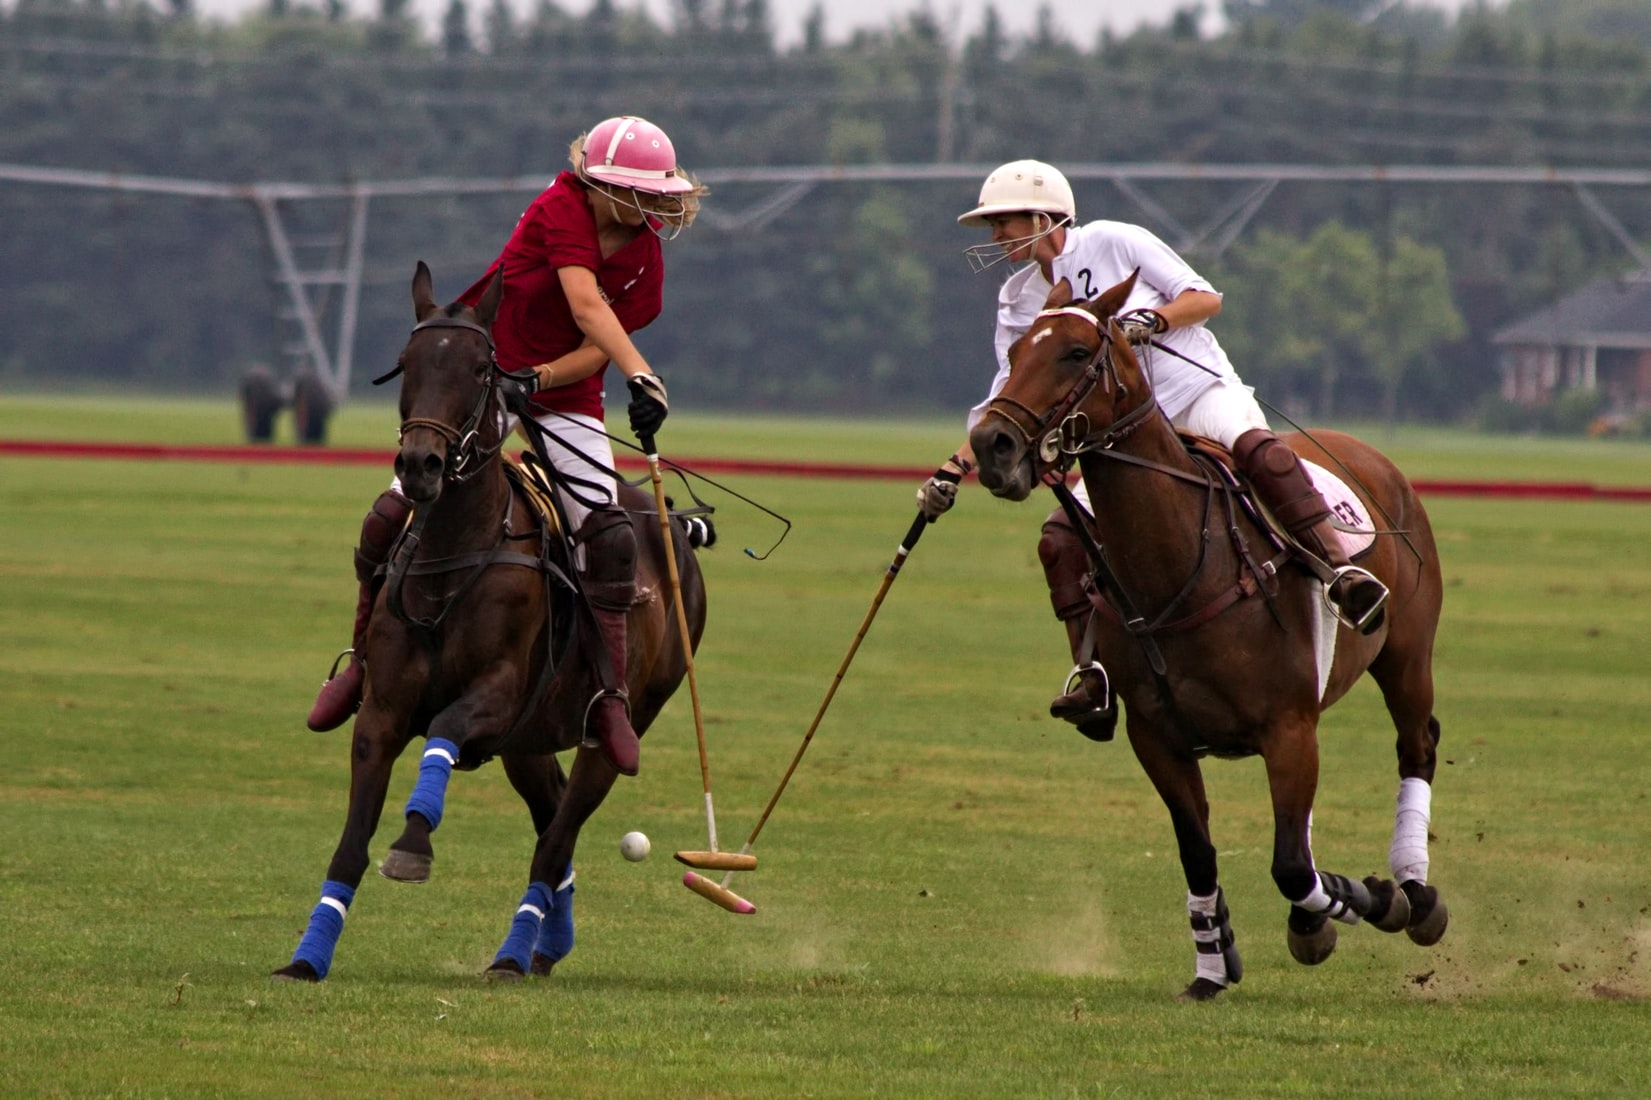 Polo field & players